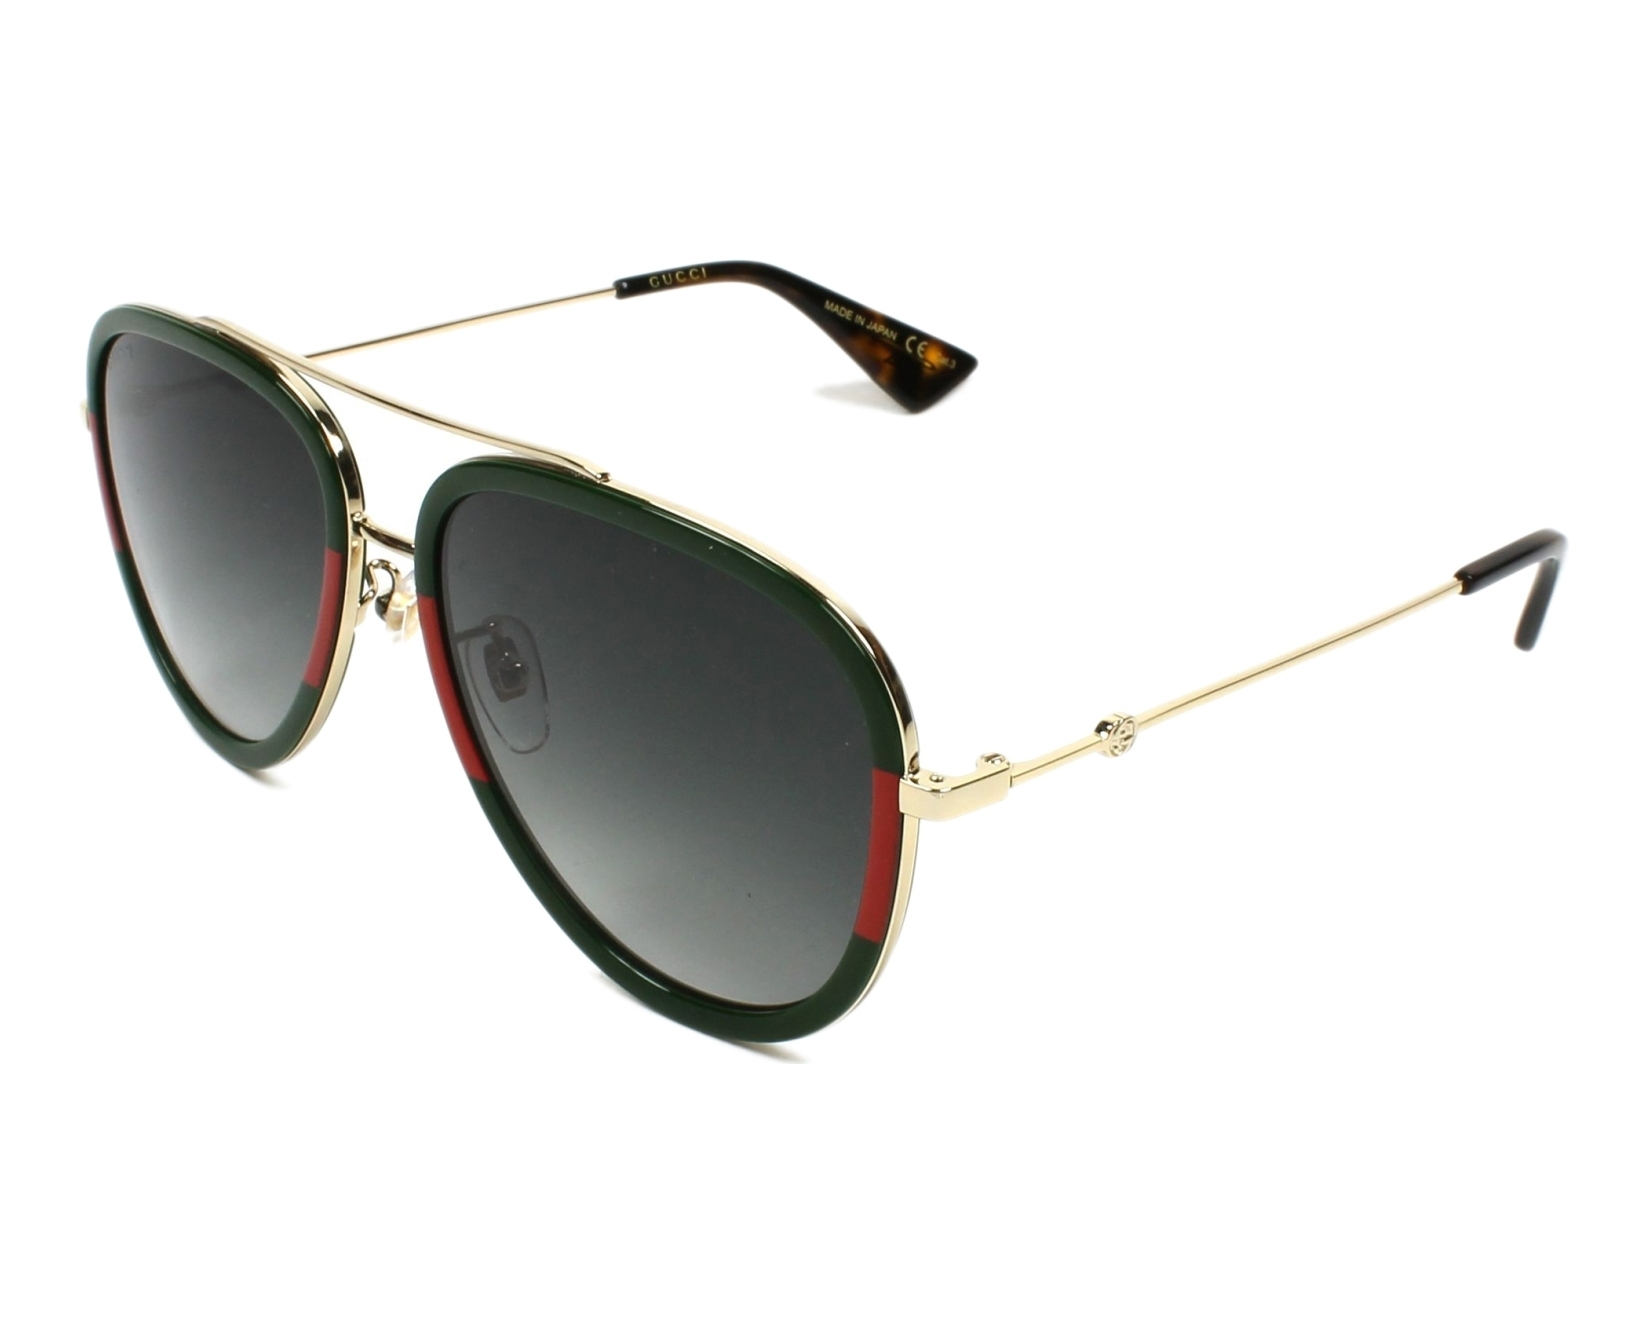 5246885bd02 Sunglasses Gucci GG-0062-S 003 57-17 Gold Green profile view